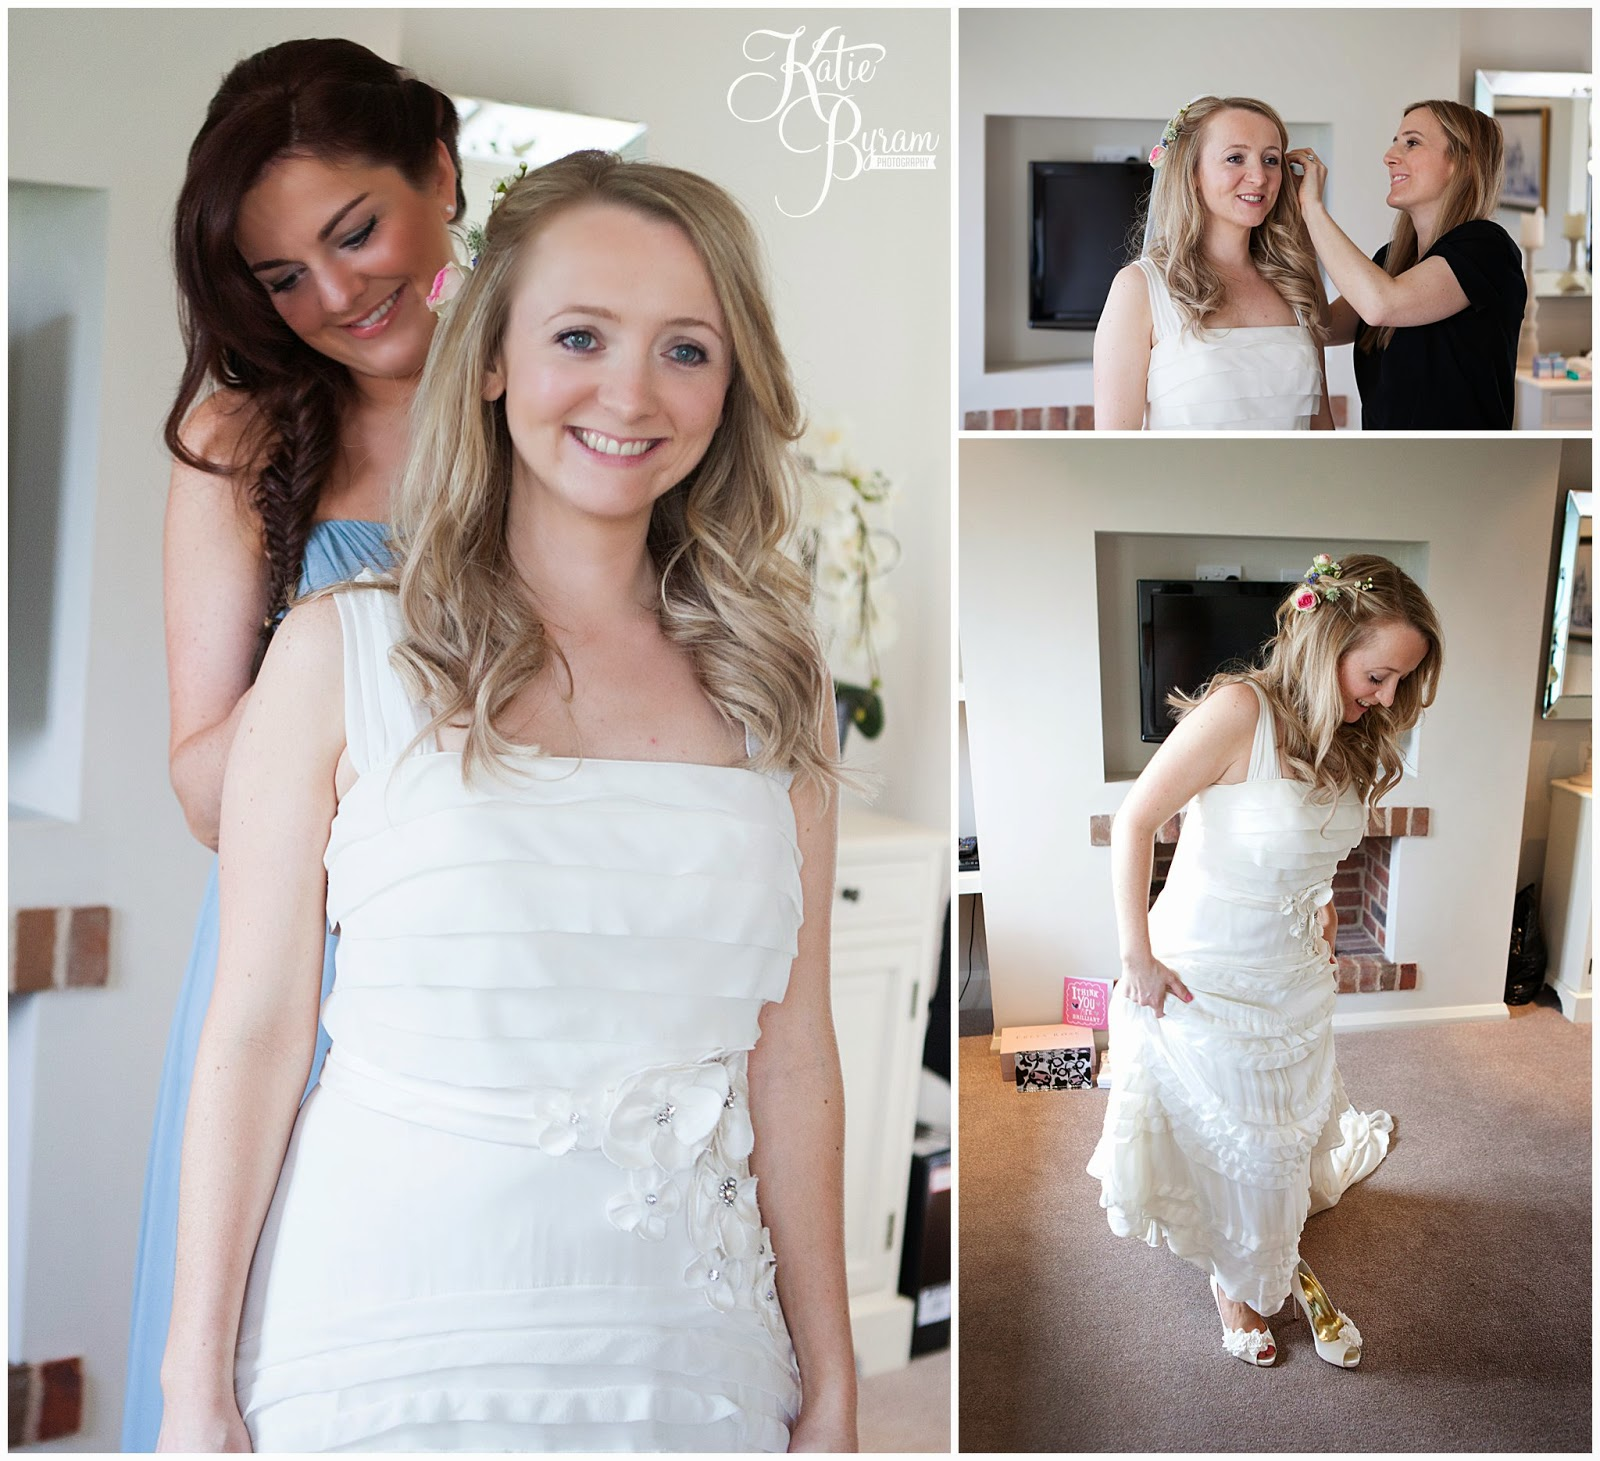 bride getting ready, priory cottages wedding, priory cottages, priory cottages wetherby, yorkshire wedding photographer, wedding venue yorkshire, jenny packham, katie byram photography, paperwhite flowers, spring wedding, rustic wedding, marquee wedding, cottage wedding, countryside wedding